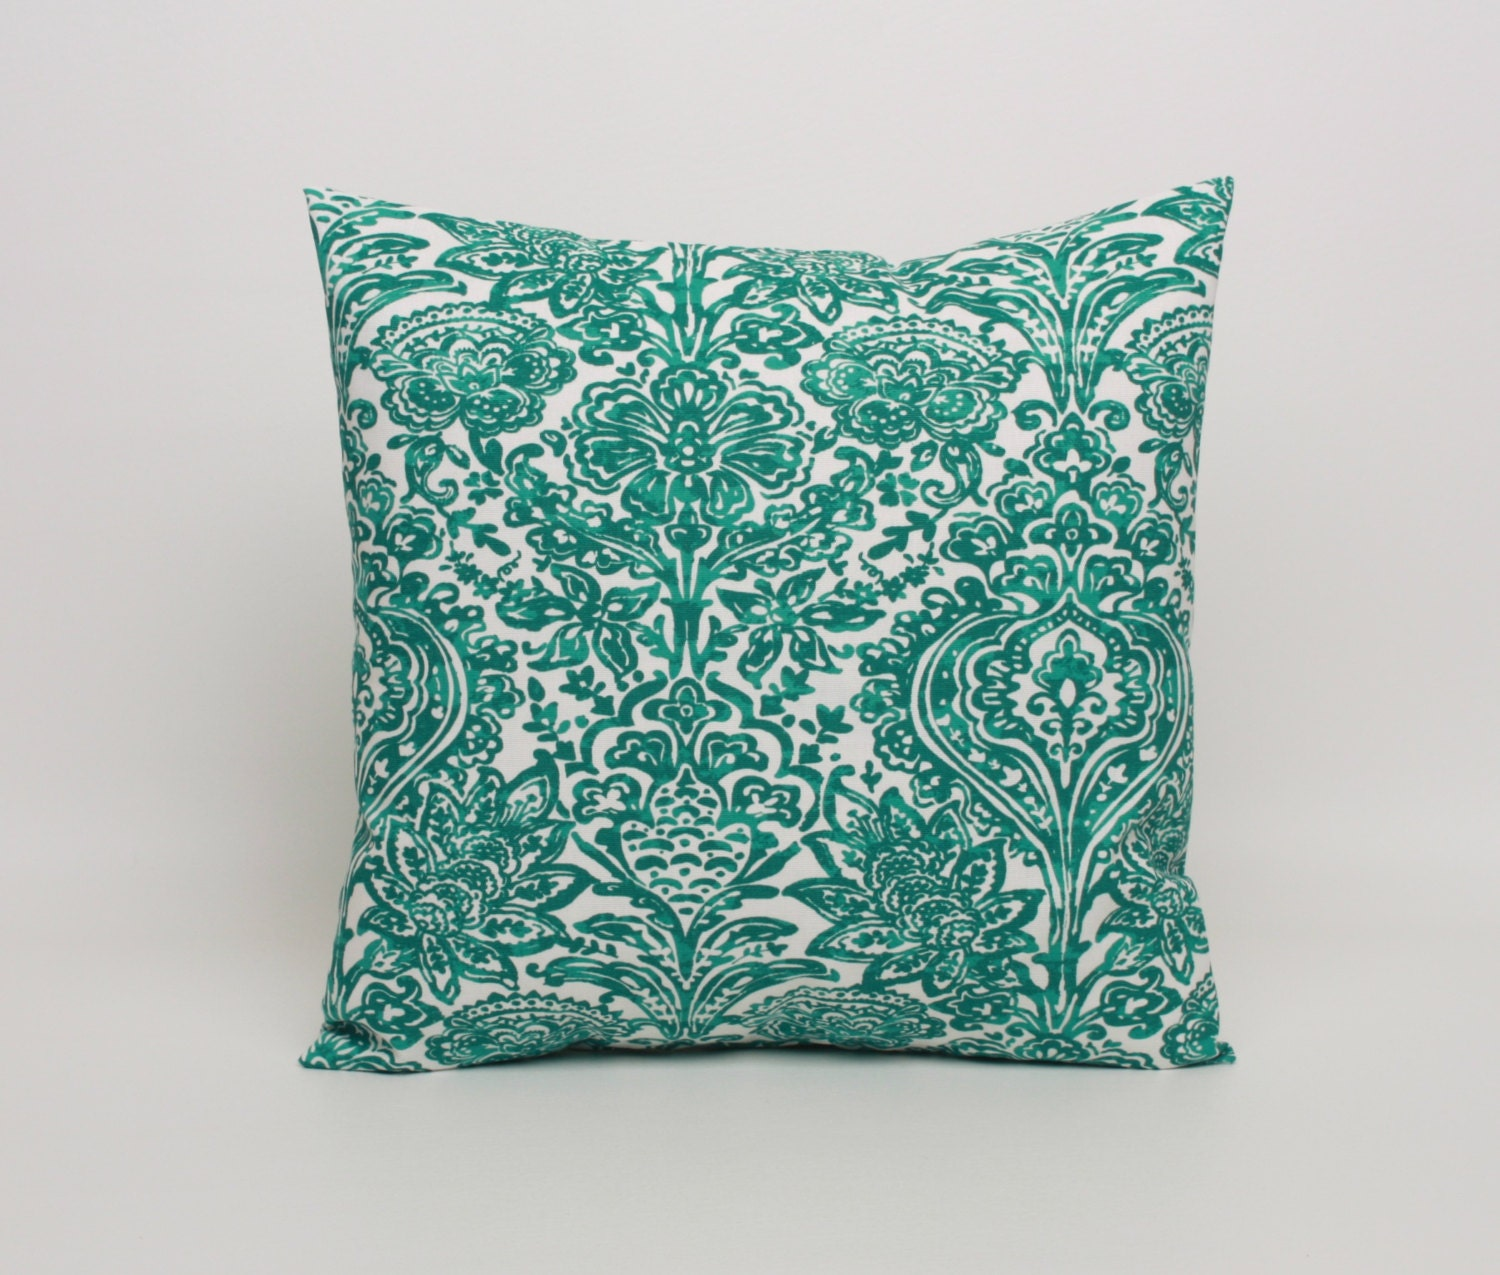 Jade Green Pillow Cover in Premier Prints Shiloh Pattern.